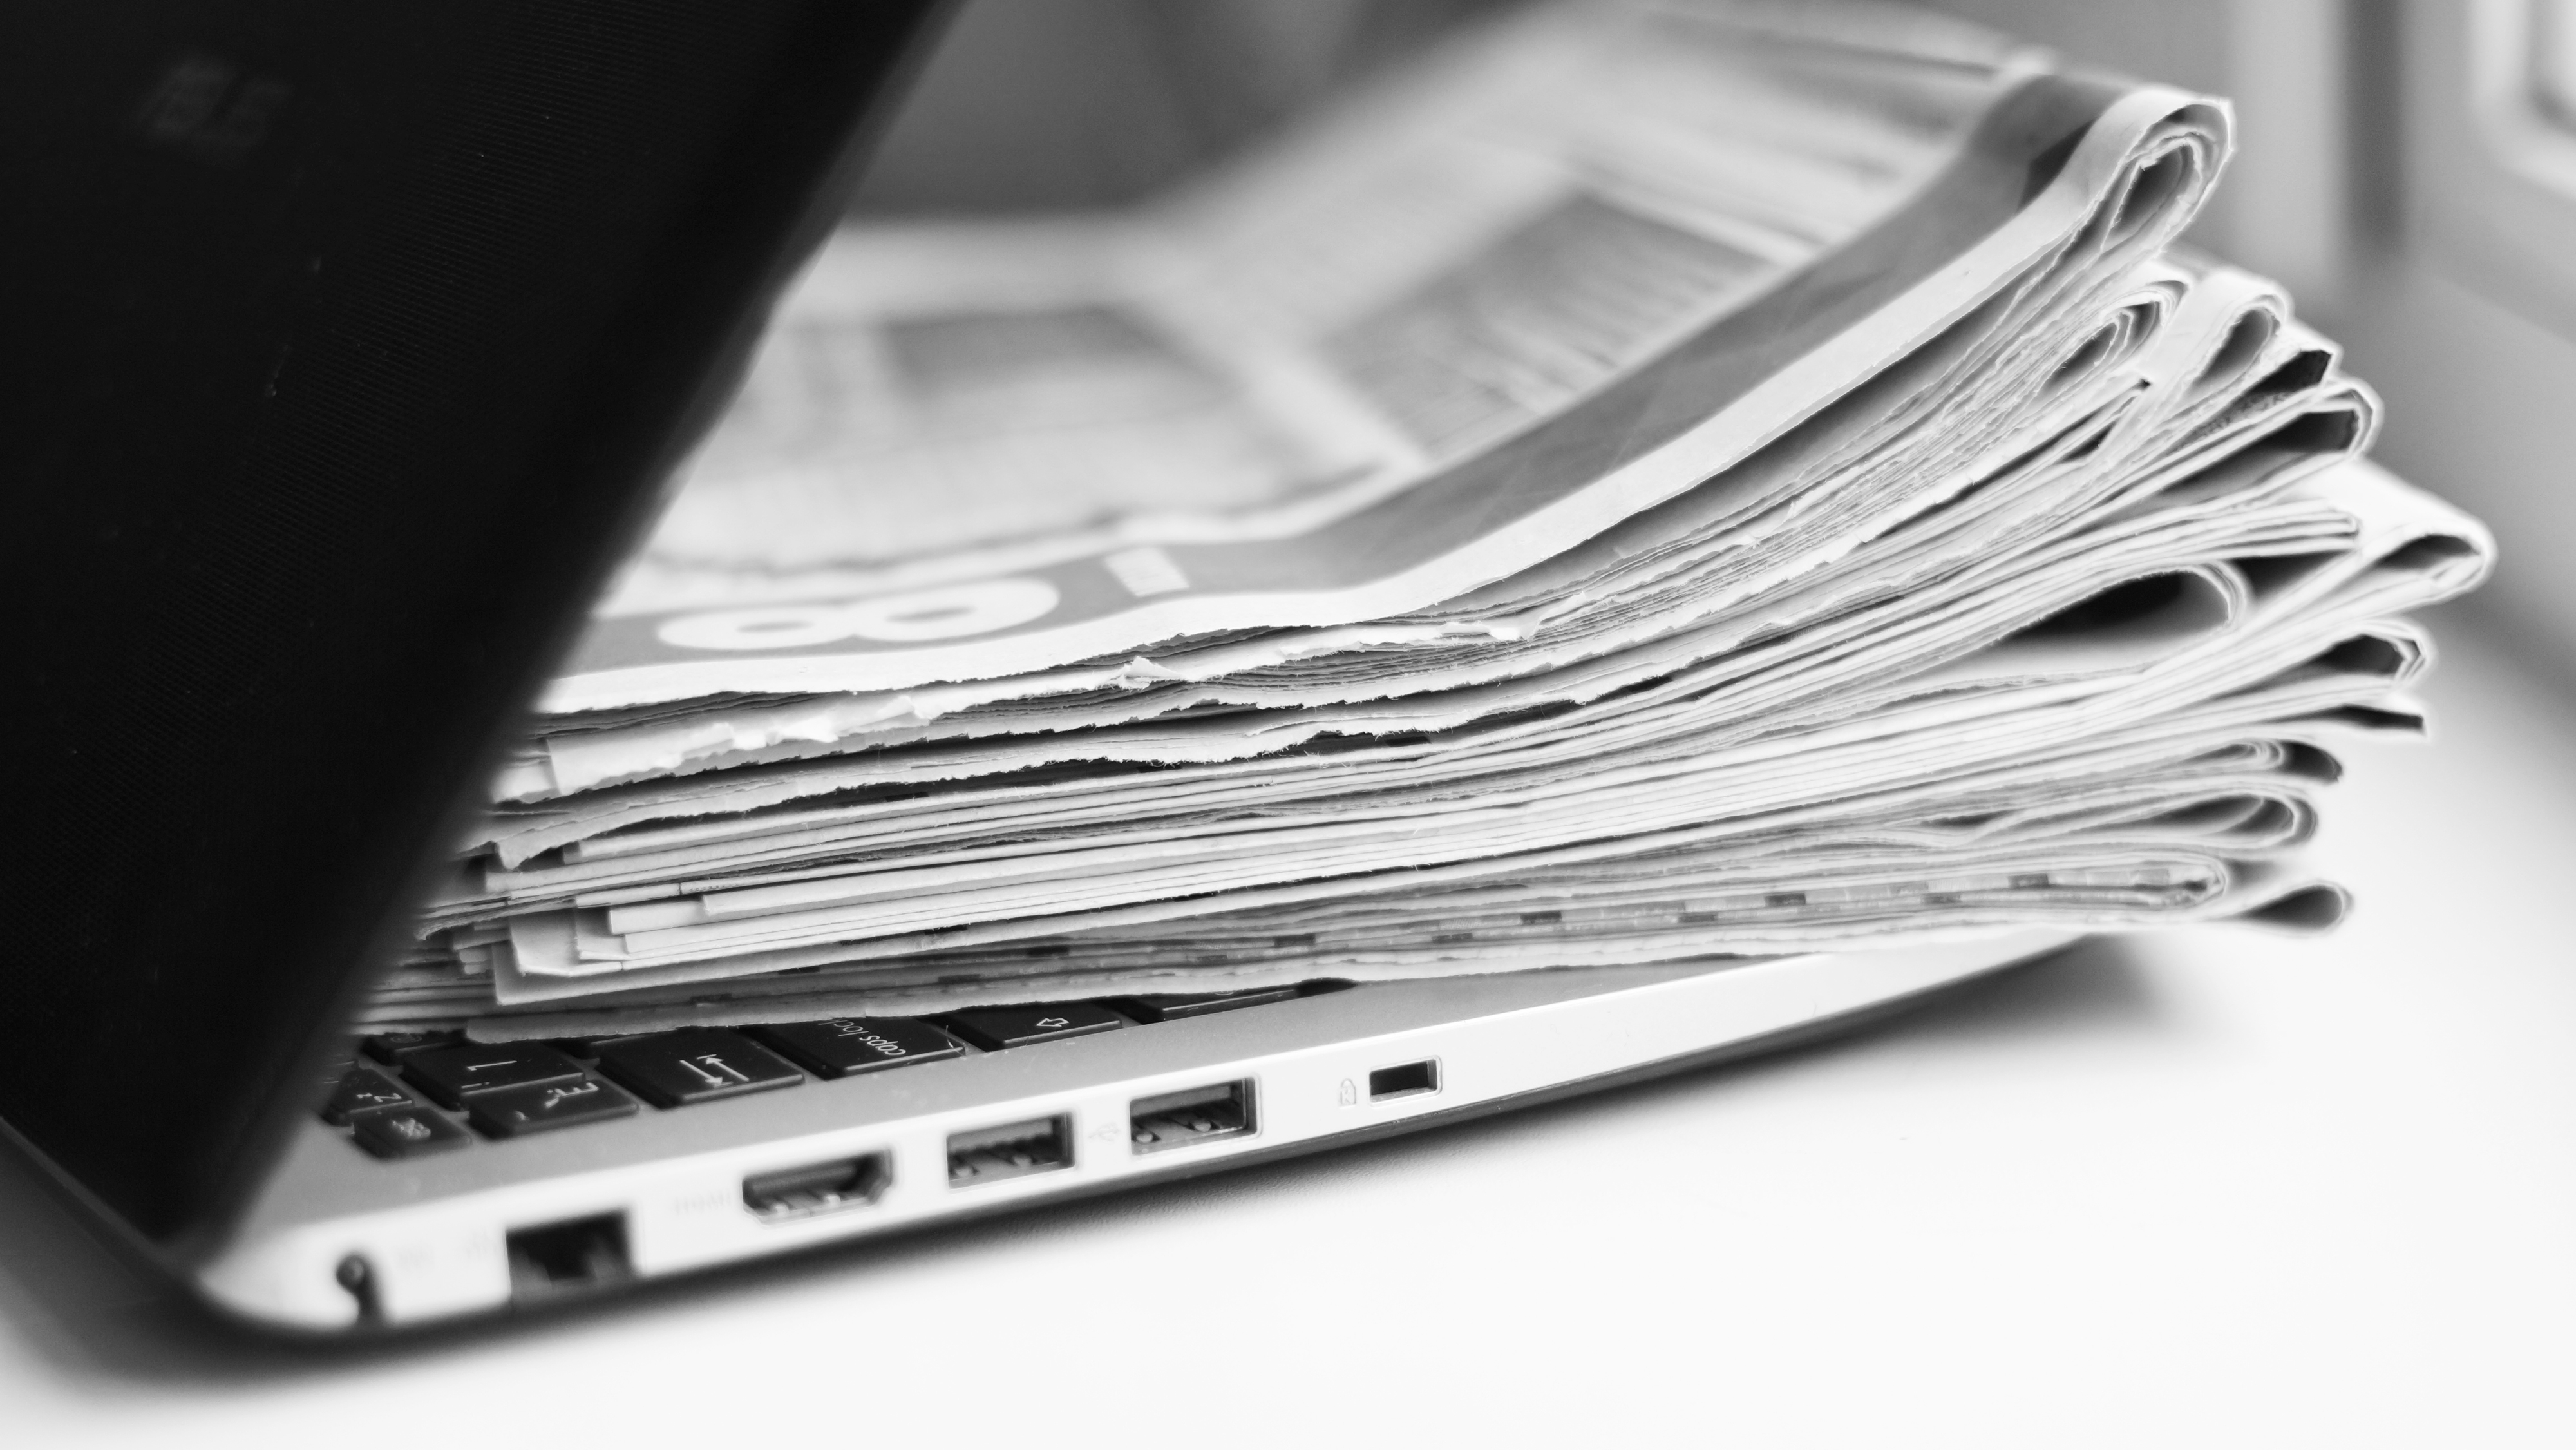 Newspapers within a closing laptop